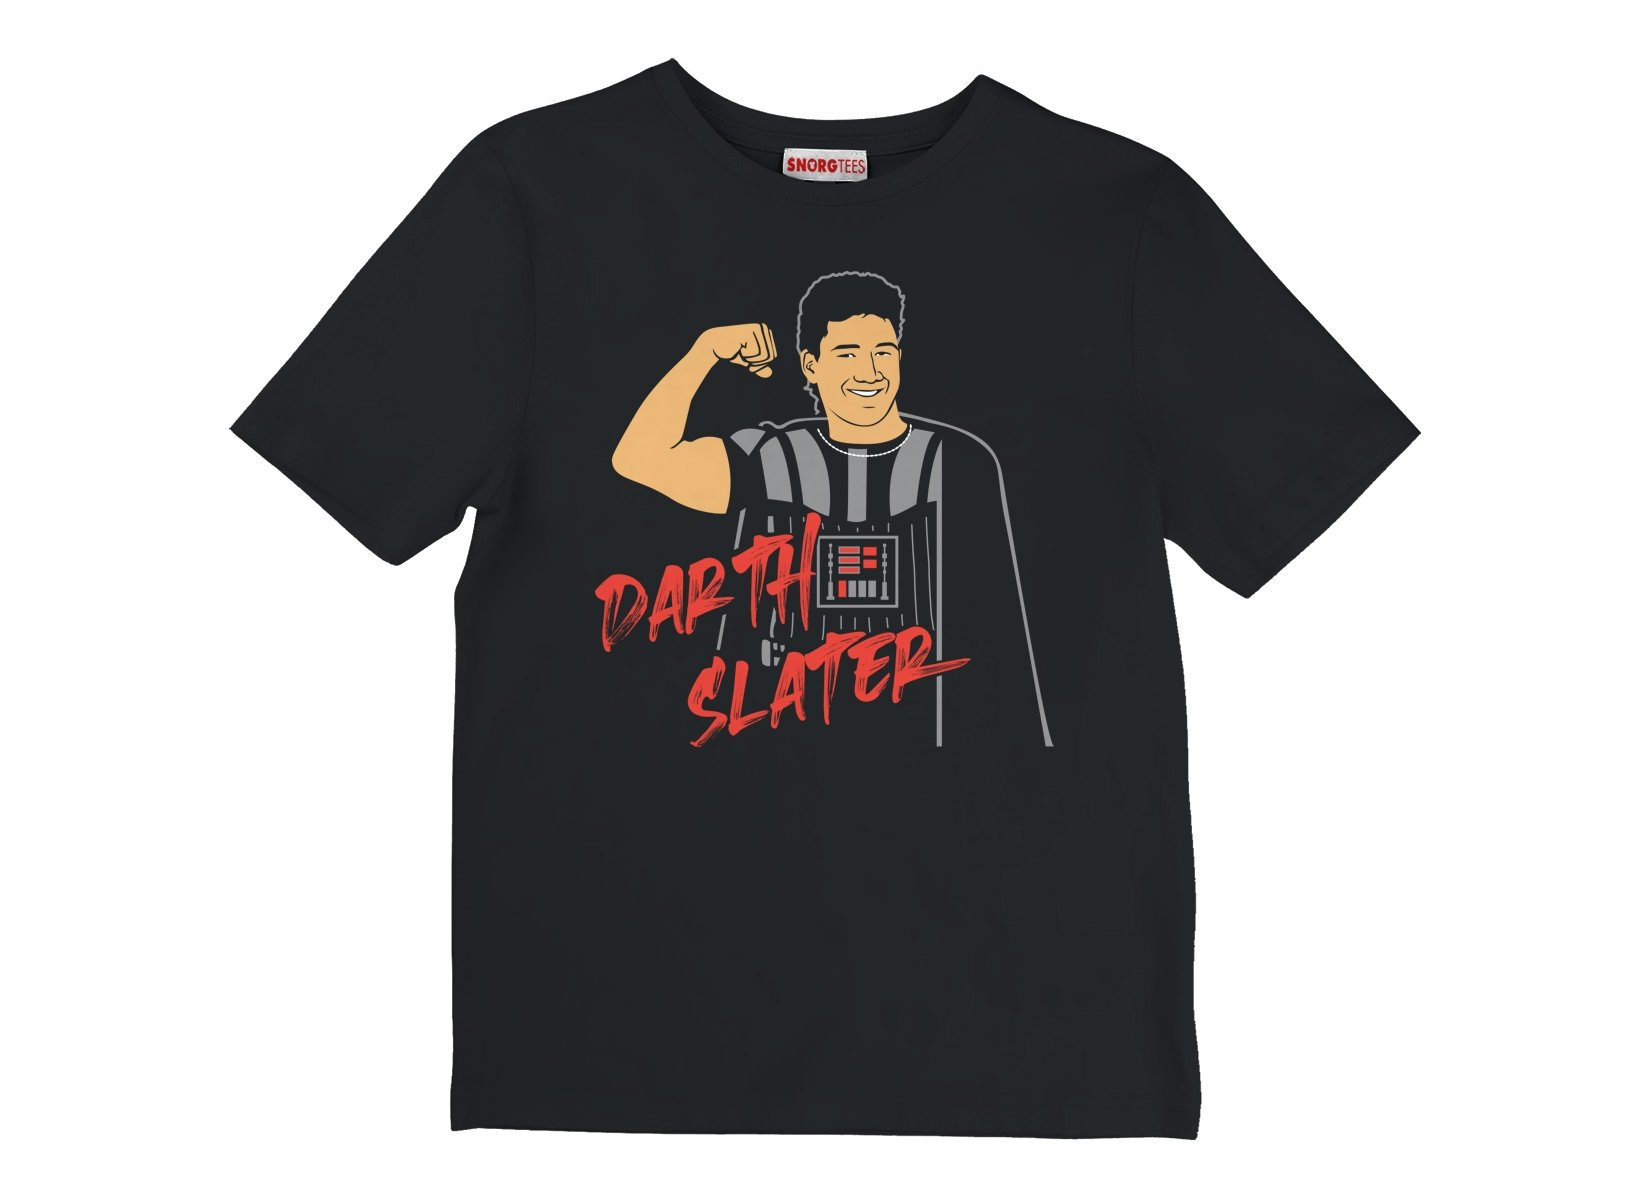 Darth Slater on Kids T-Shirt